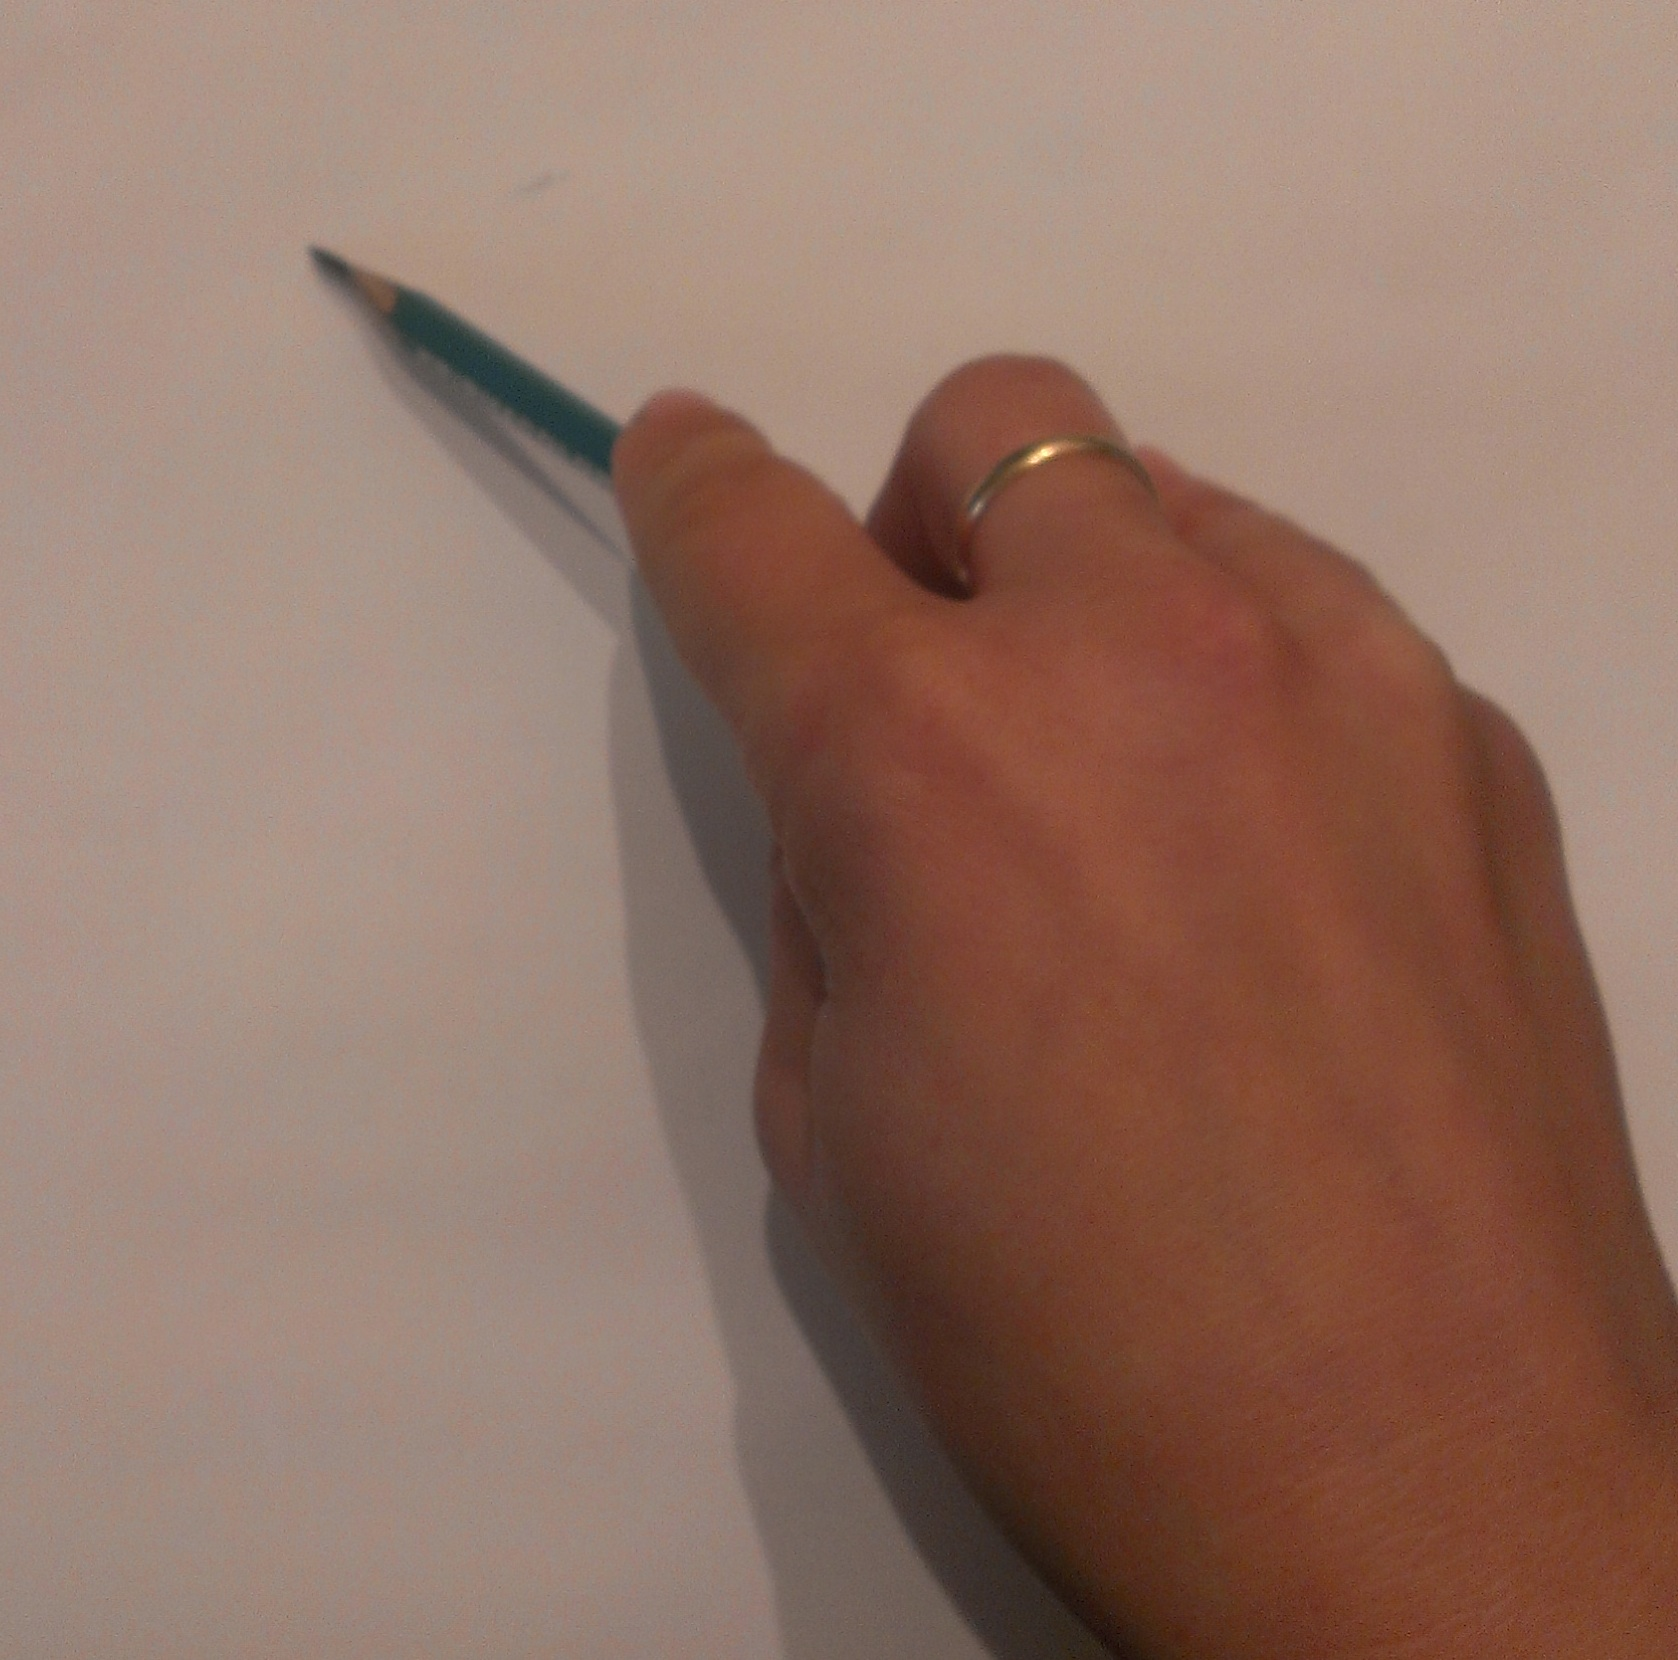 10 essential drawing materials and tools for beginners